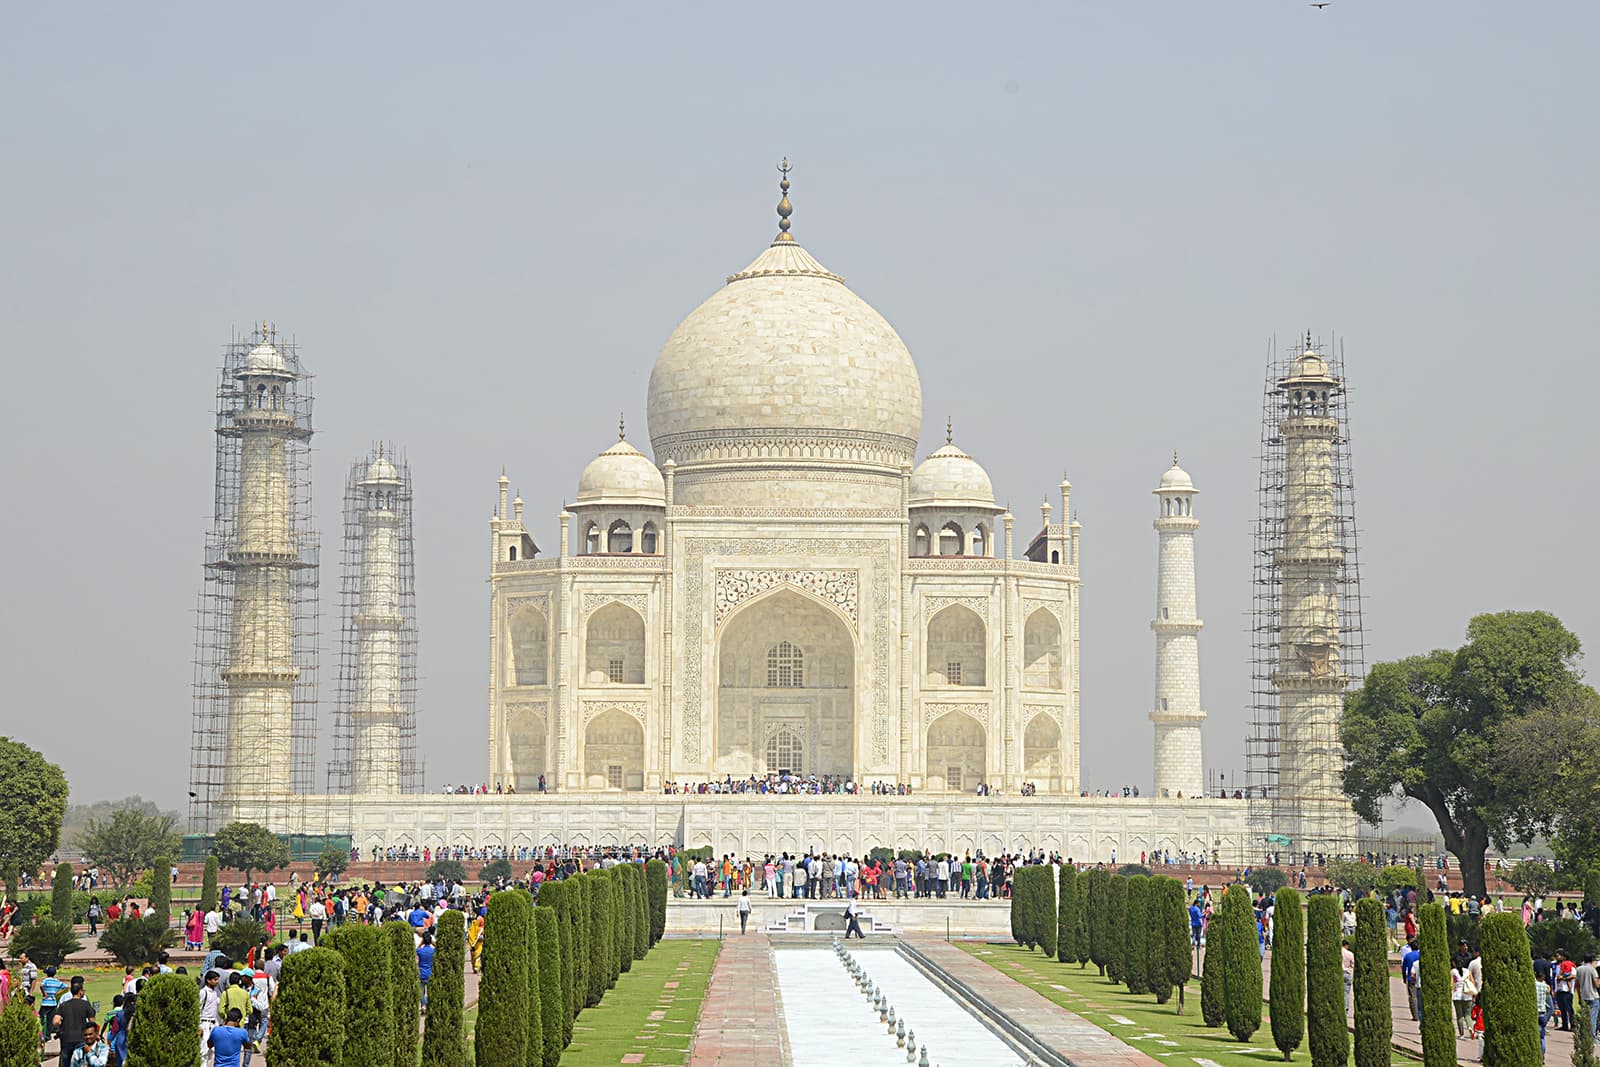 The Taj Mahal. Author provided.